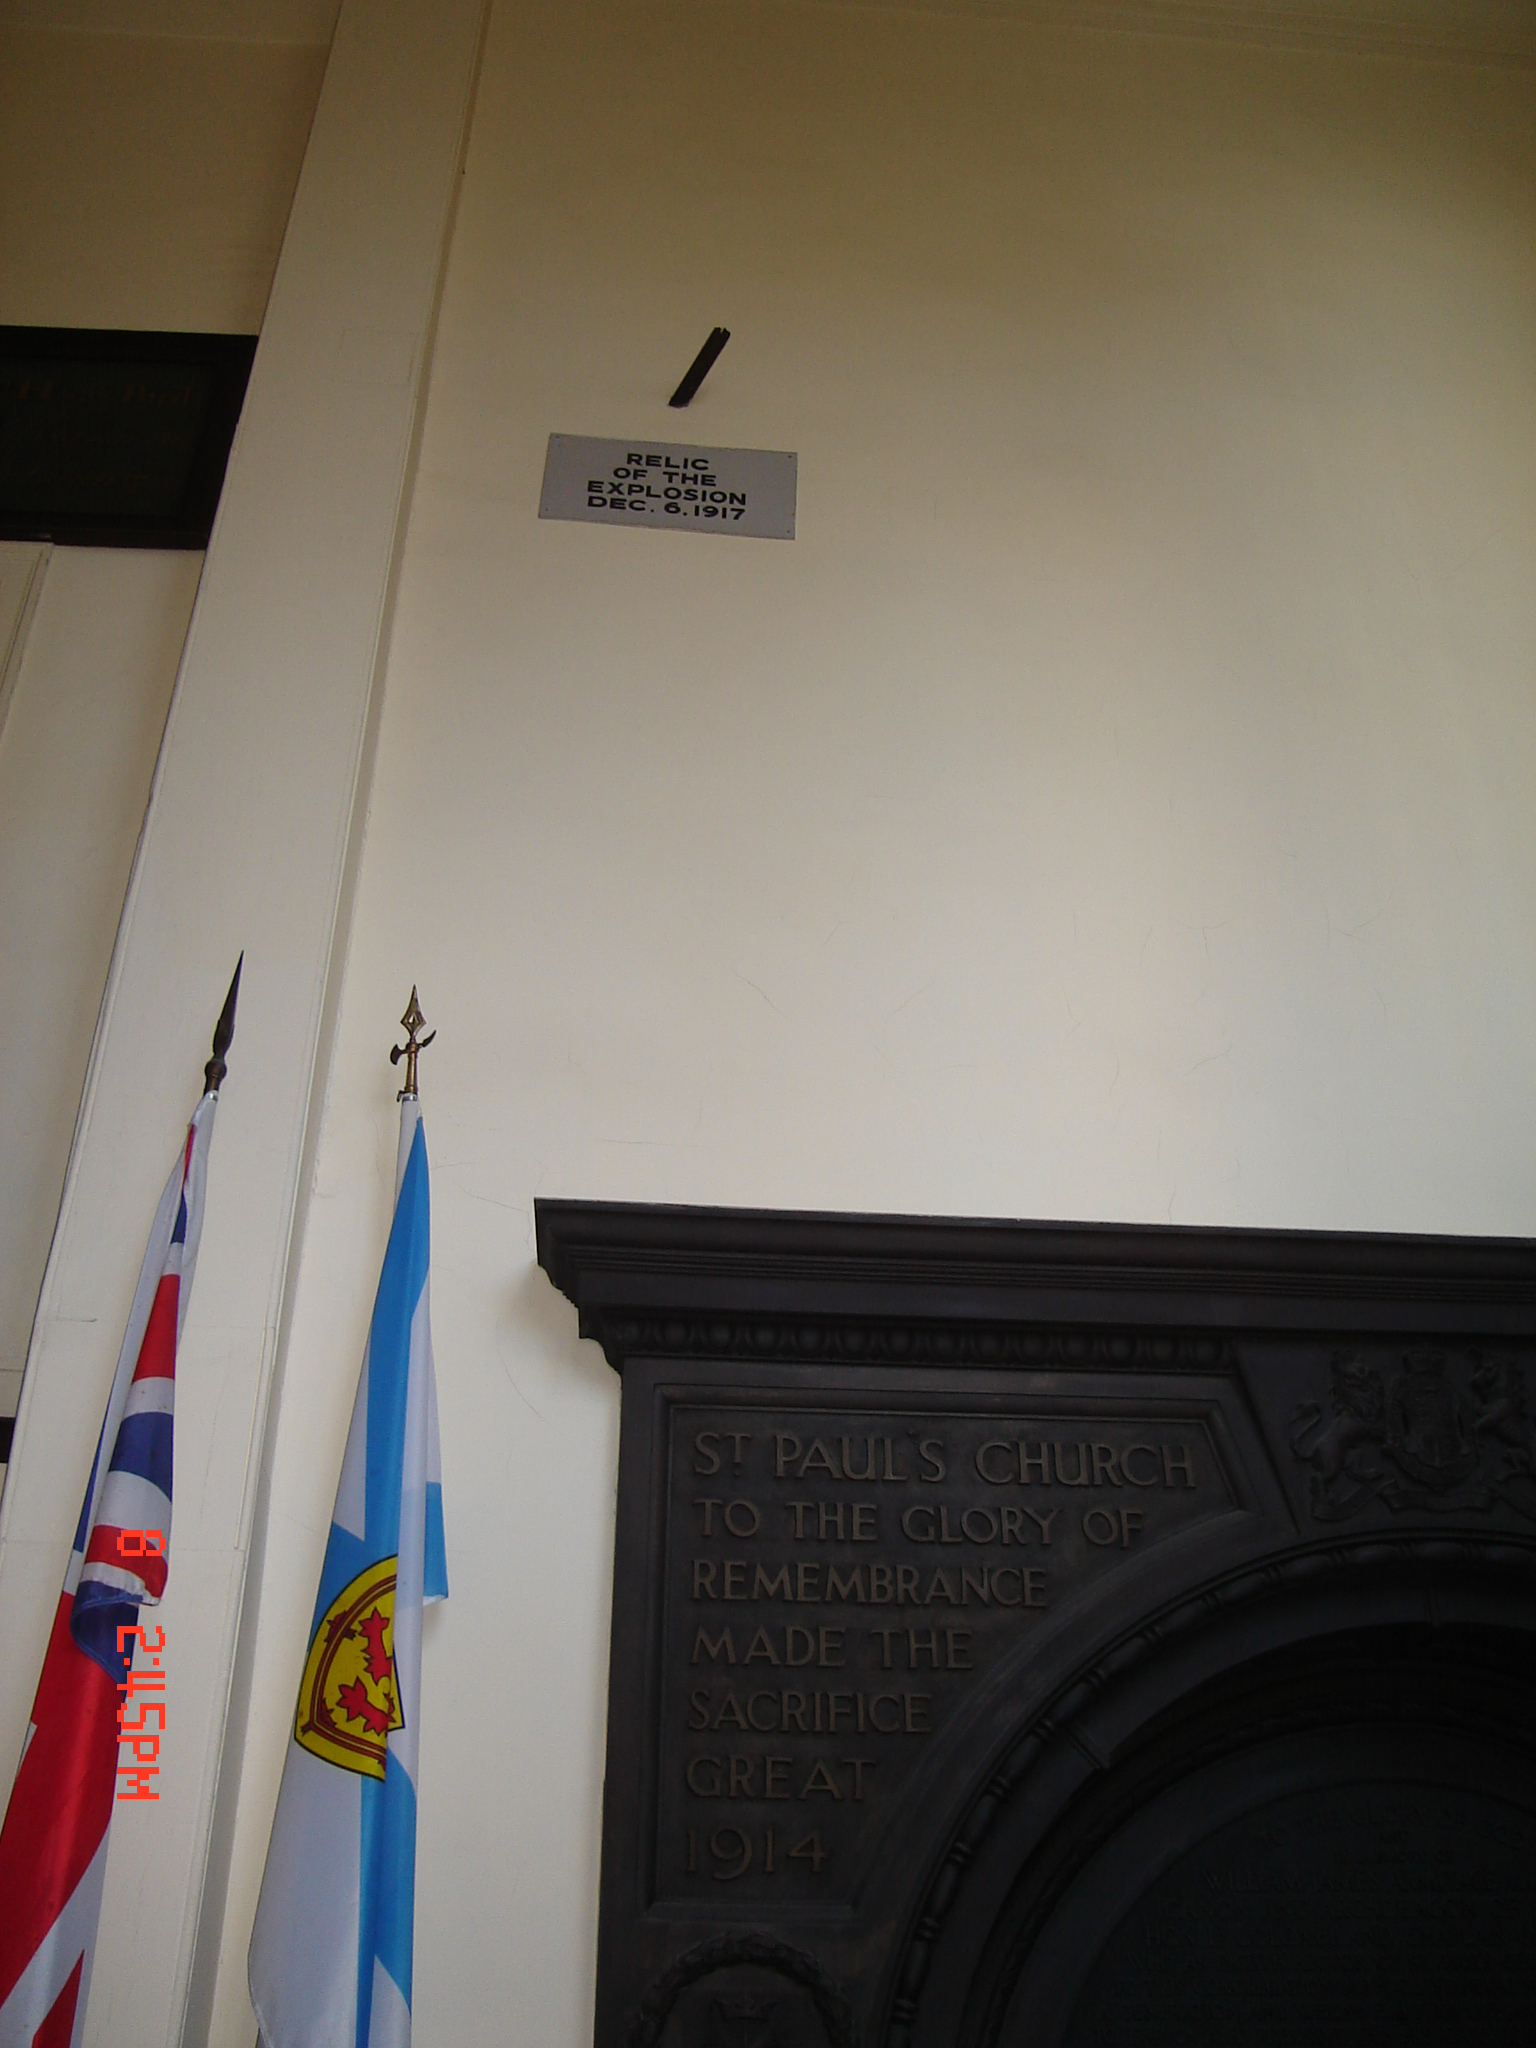 the-piece-of-metal-from-mont-blanc-remains-flown-through-the-glass-window-and-then-embedded-above-the-door-in-the-inside-wall-of-the-porch-of-st-paul_s-anglican-church